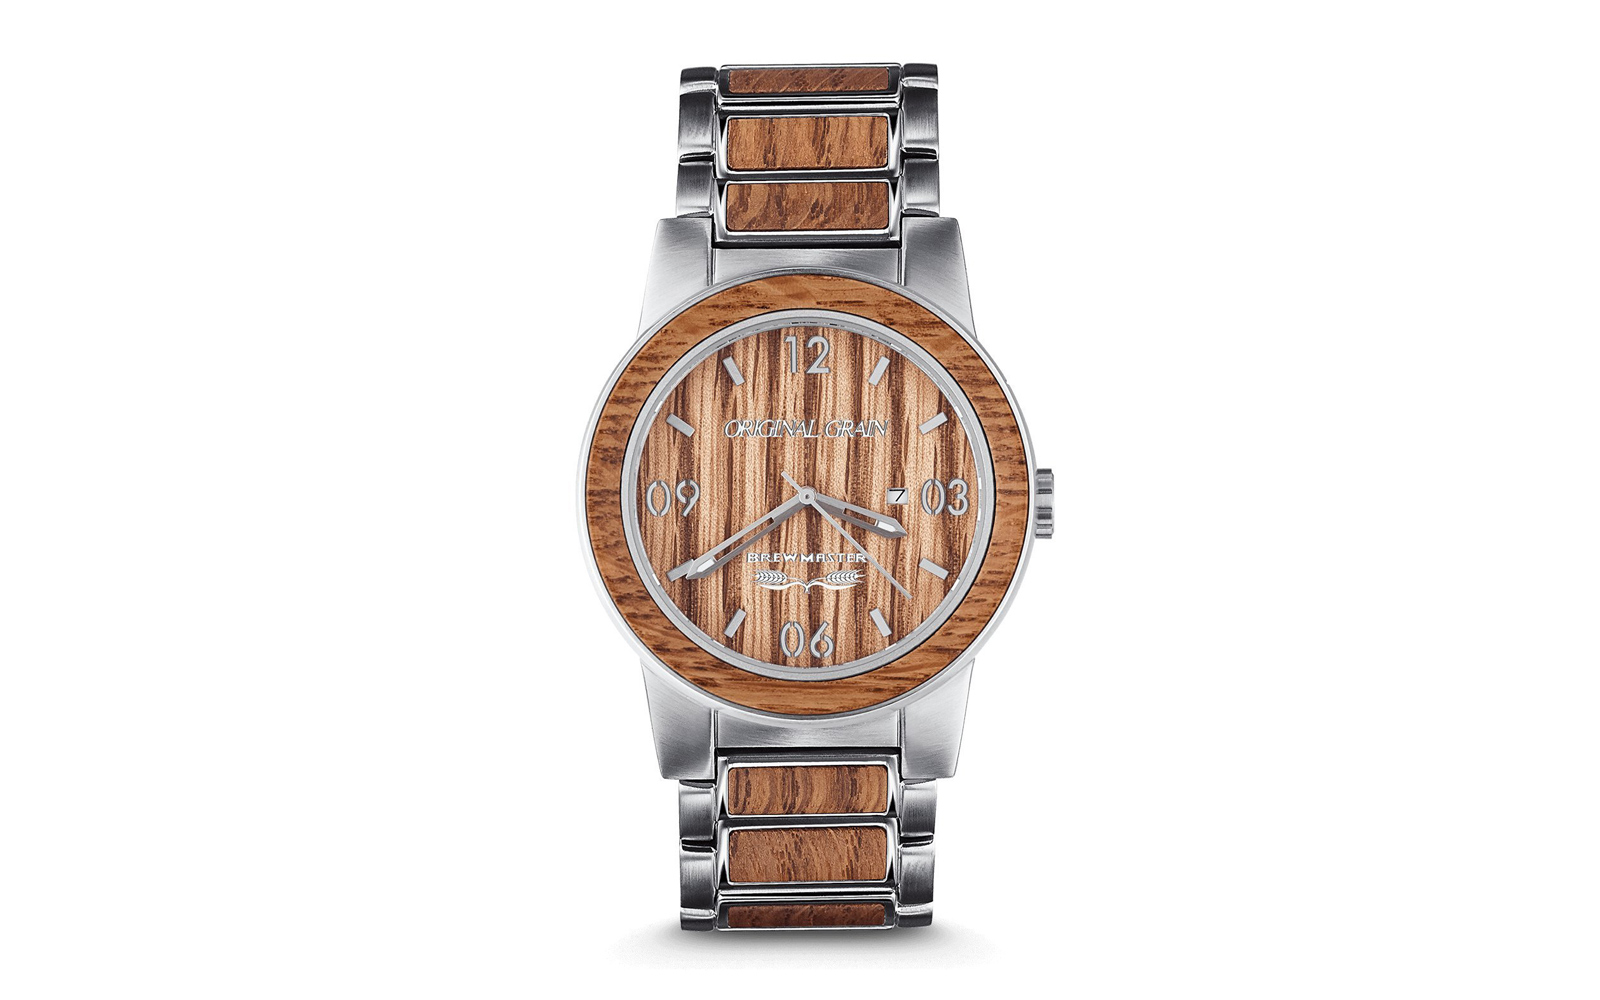 Original Grain, Brewmaster Watch